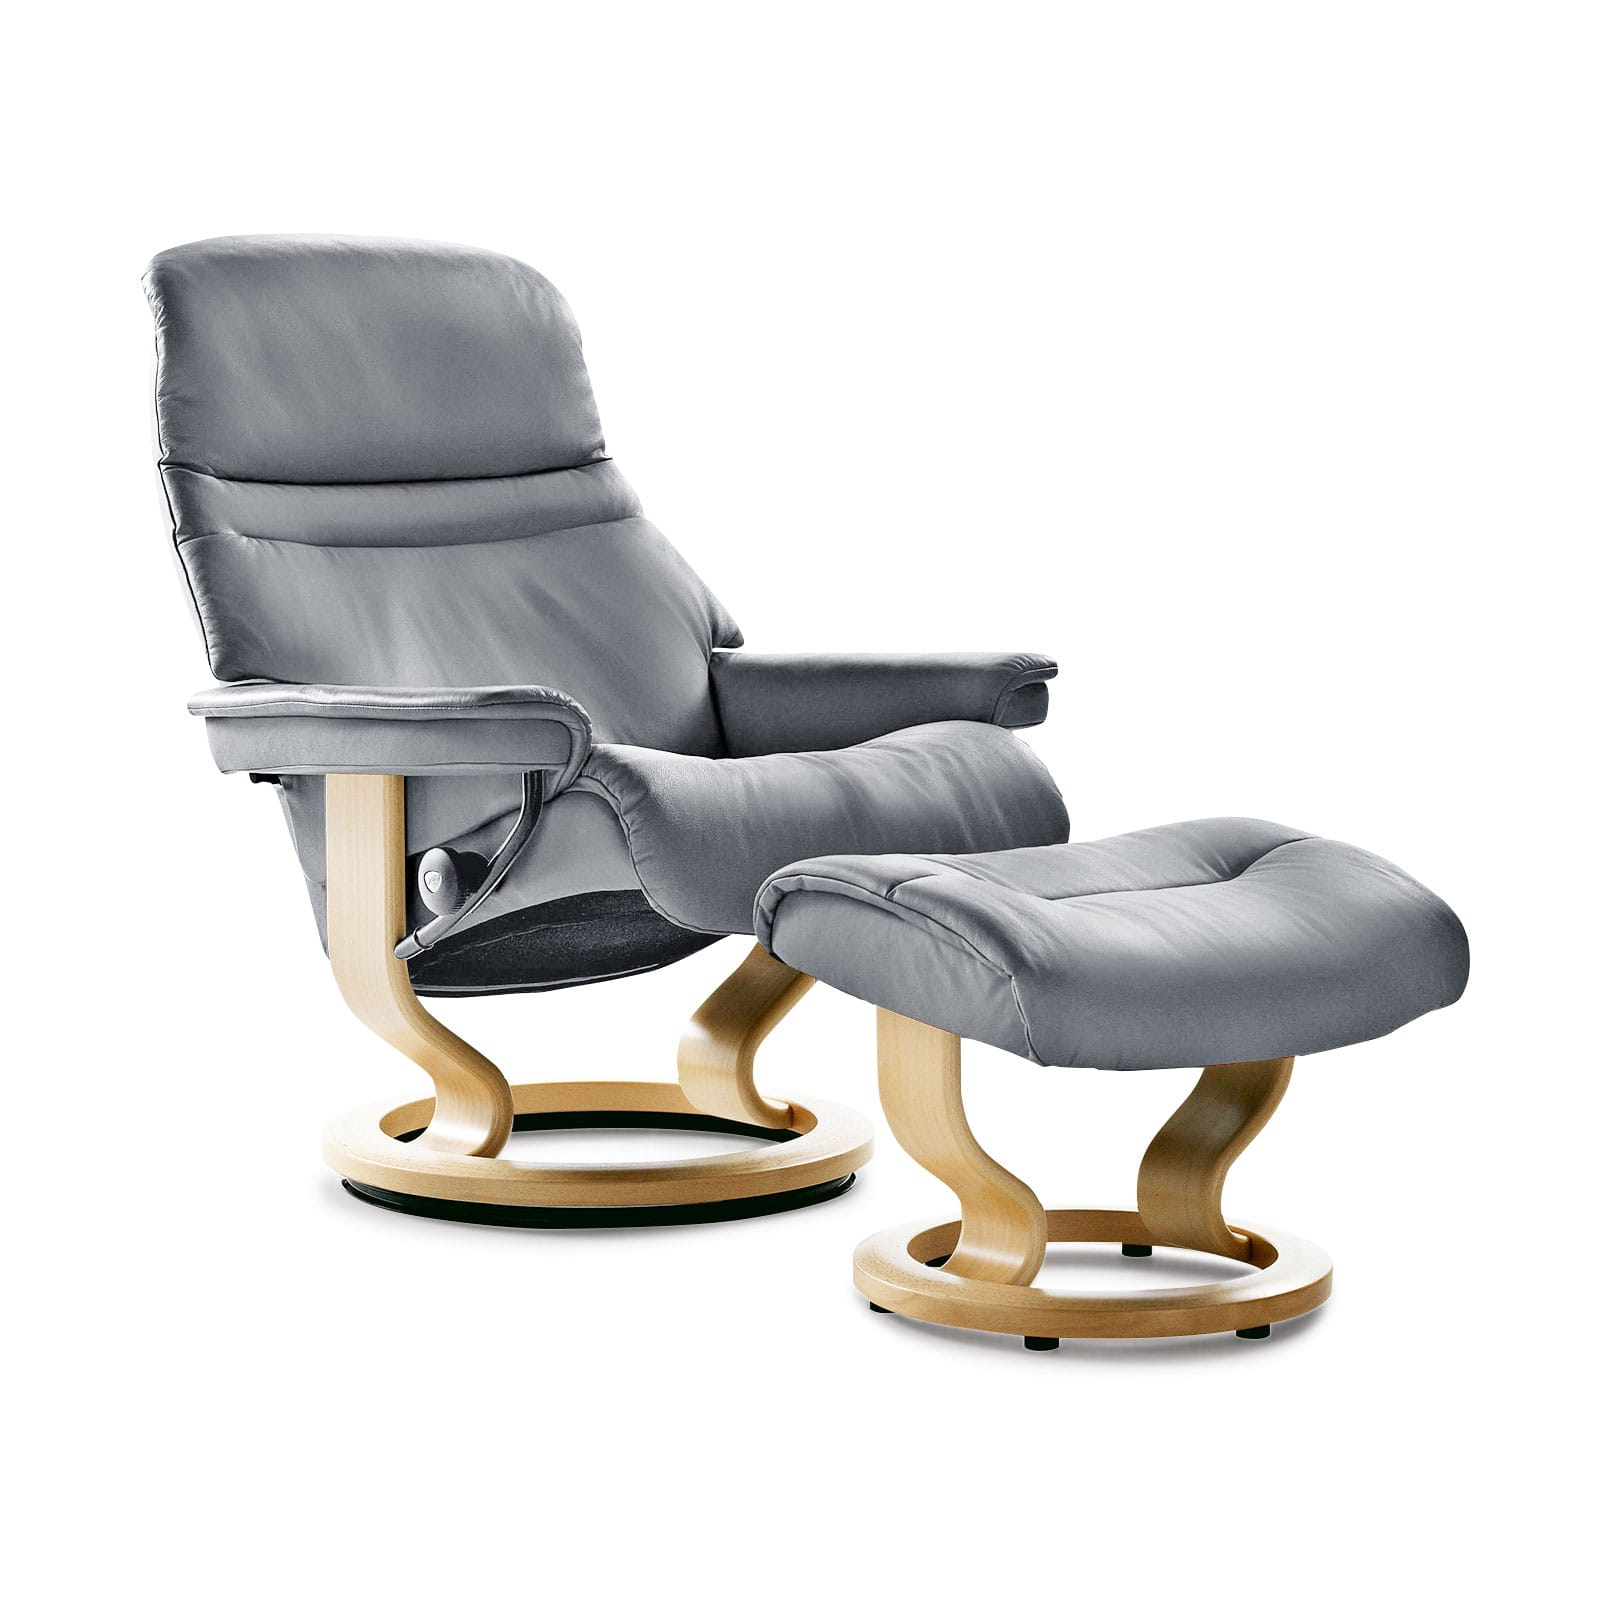 Stressless Sessel Stoffbezug Stressless Sessel Sunrise Batick Grey Mit Hocker Stressless